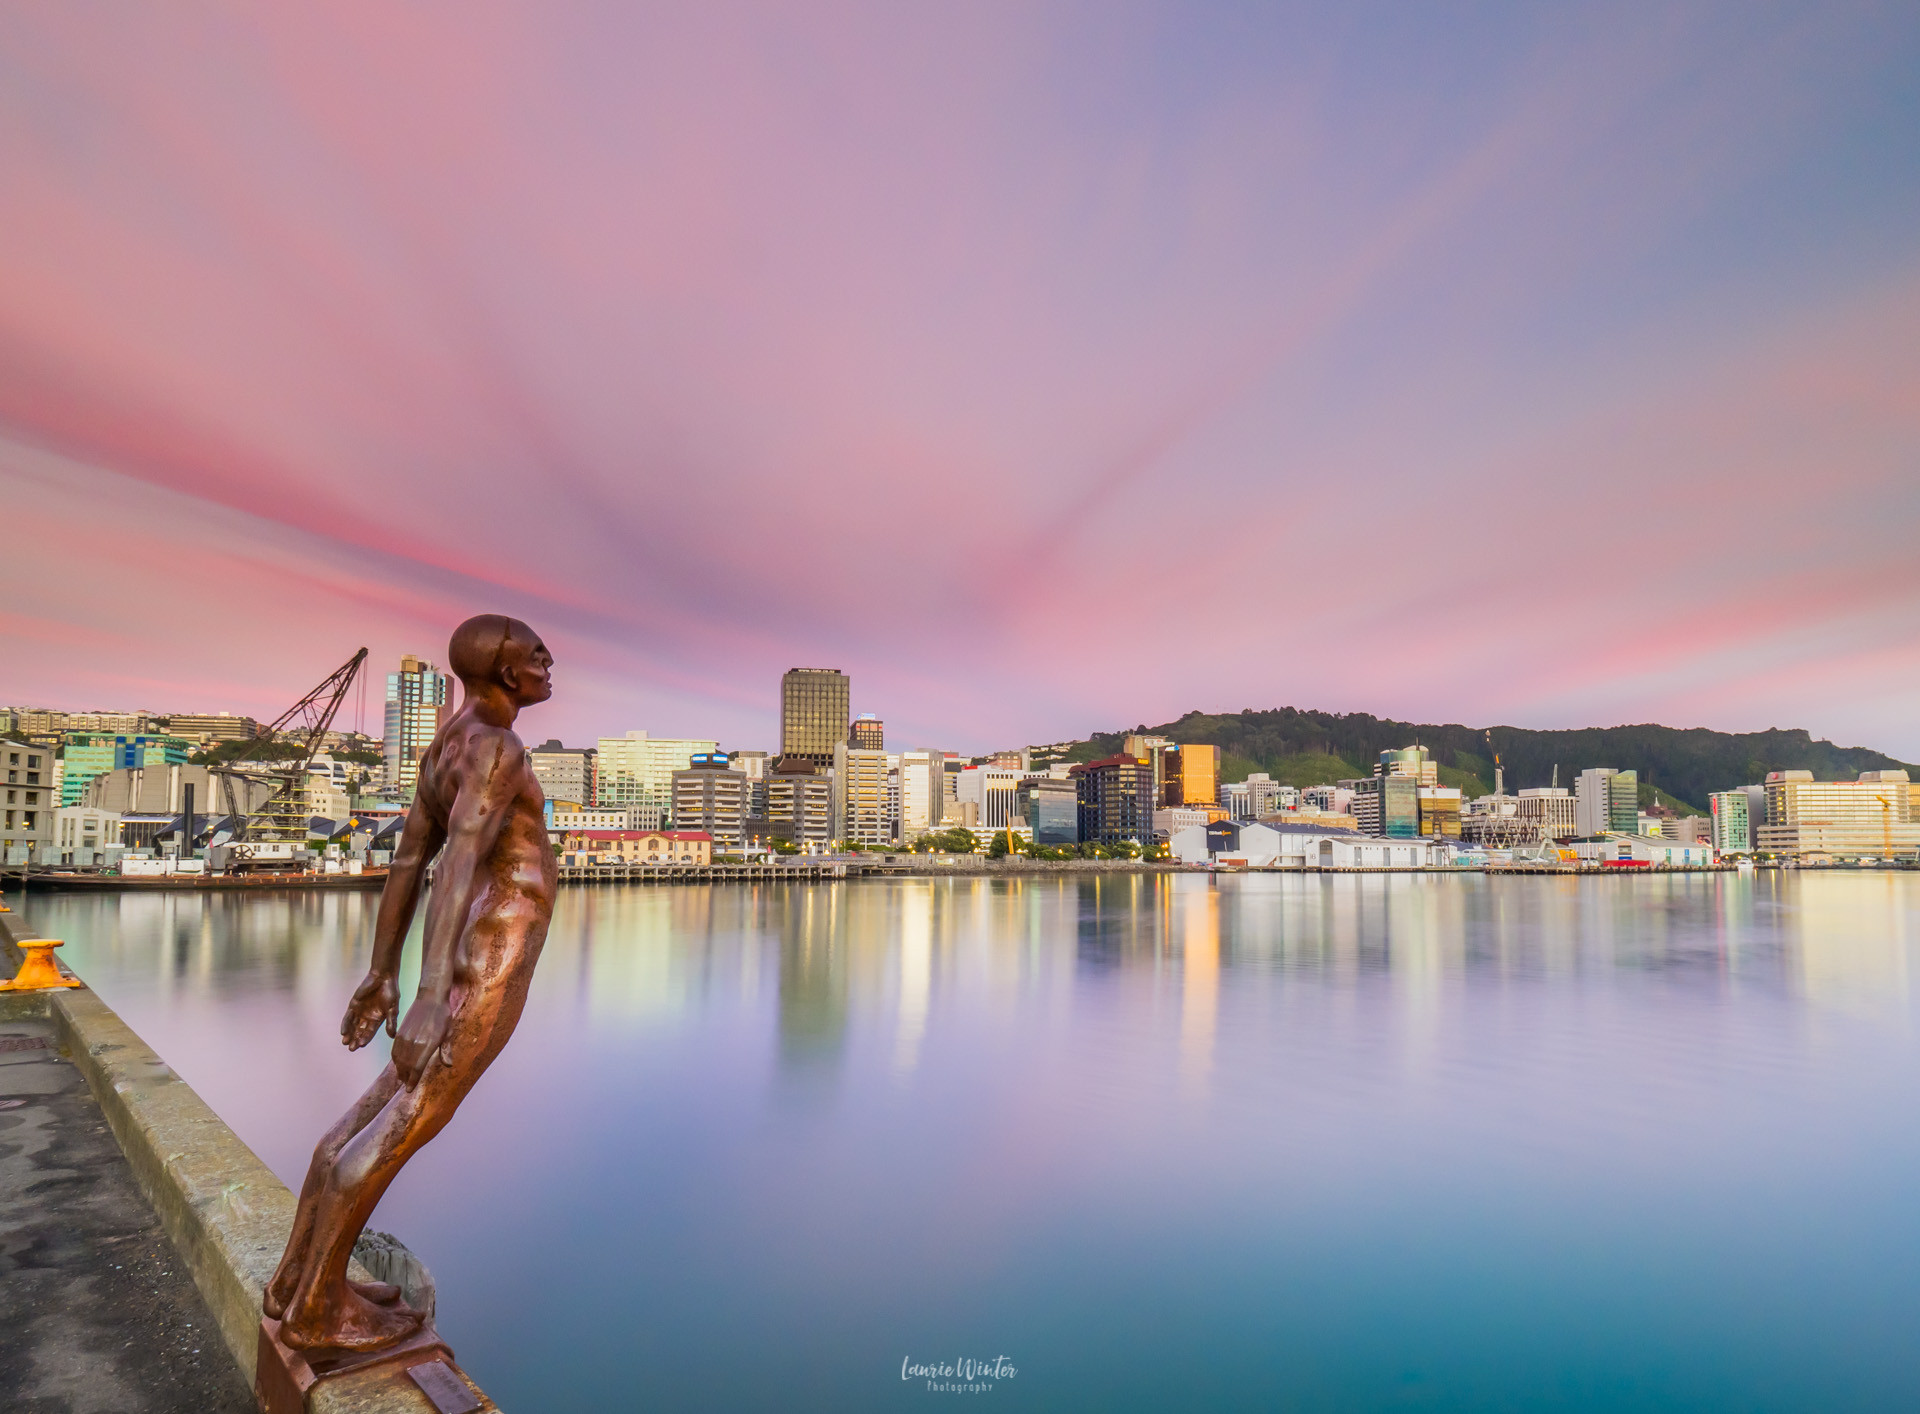 sunrise-wellington-city-solace-wind.jpg